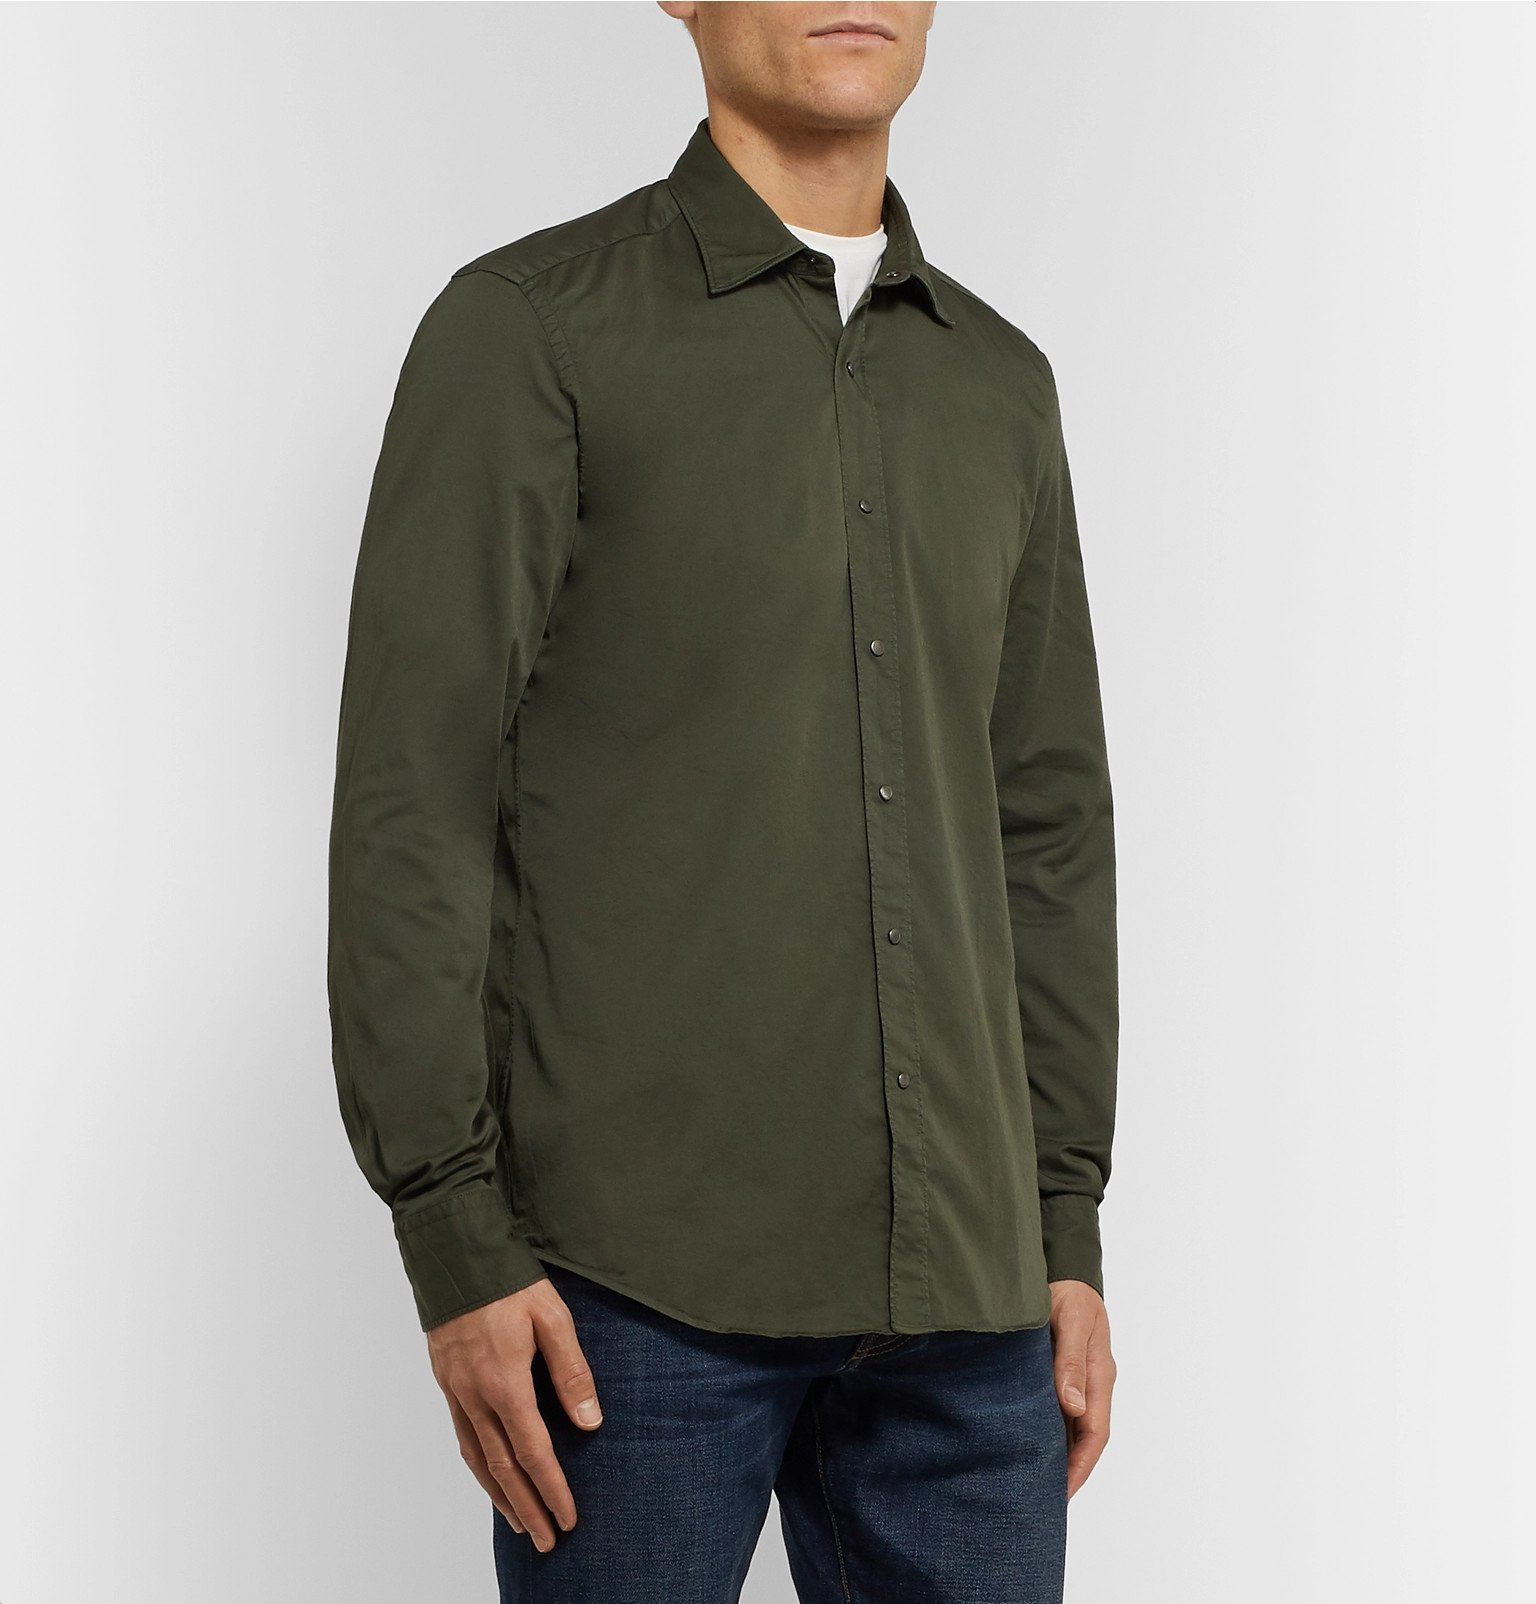 Tod's - Slim-Fit Garment-Dyed Cotton-Blend Twill Shirt - Green